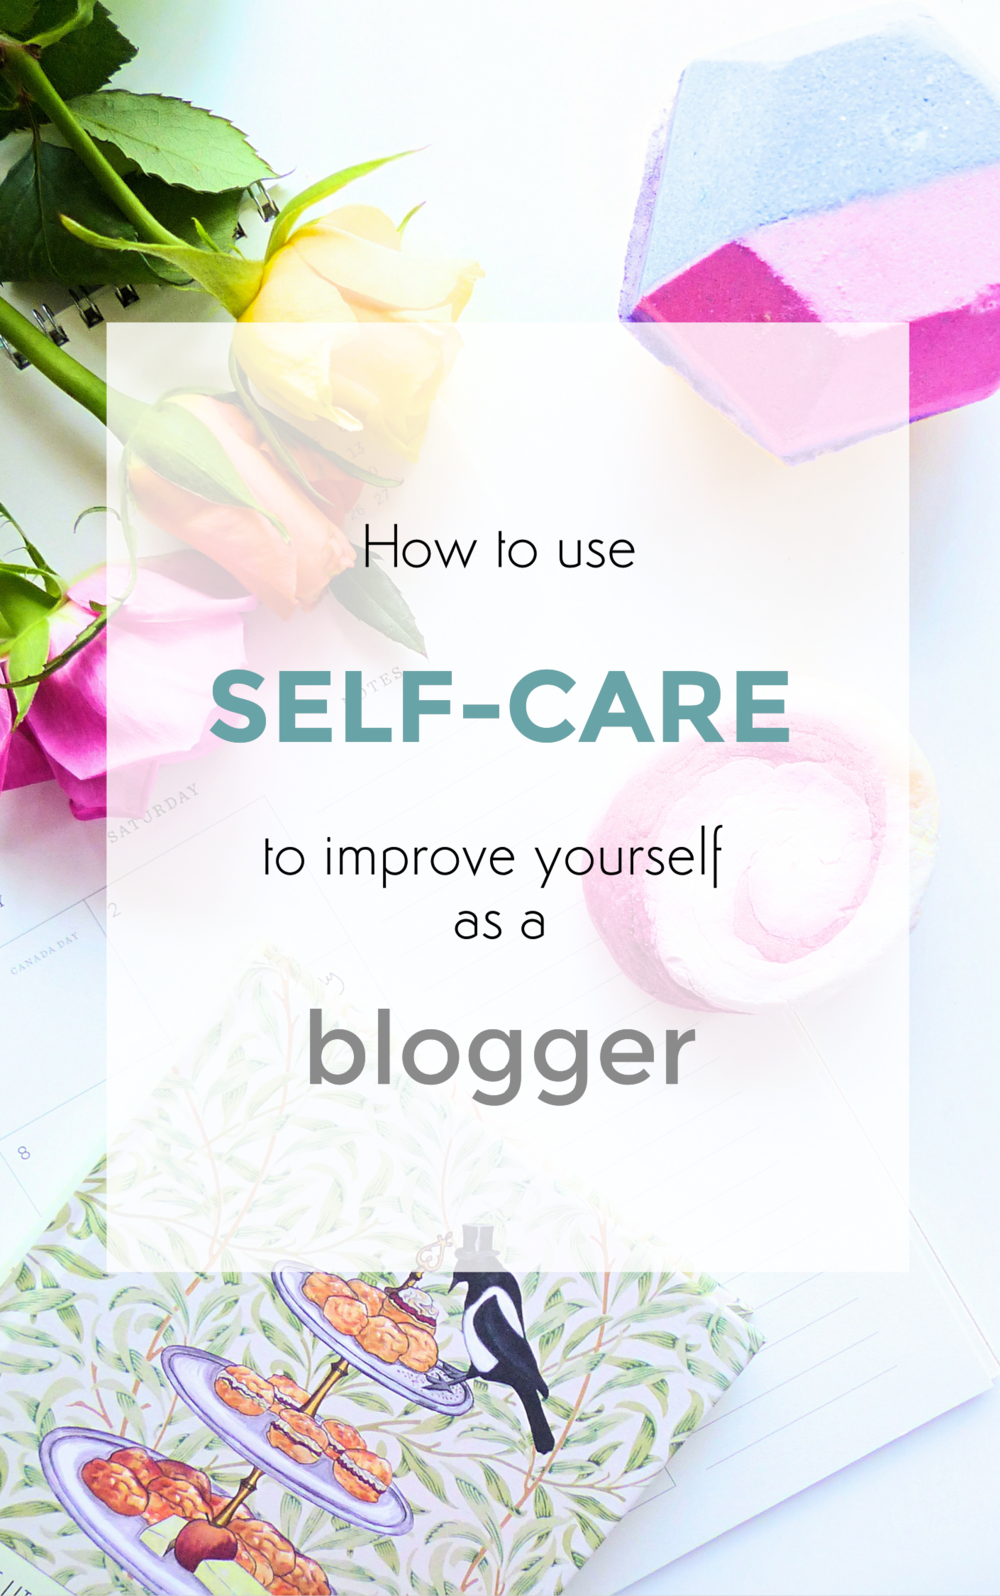 how to use self-care to improve yourself as a blogger